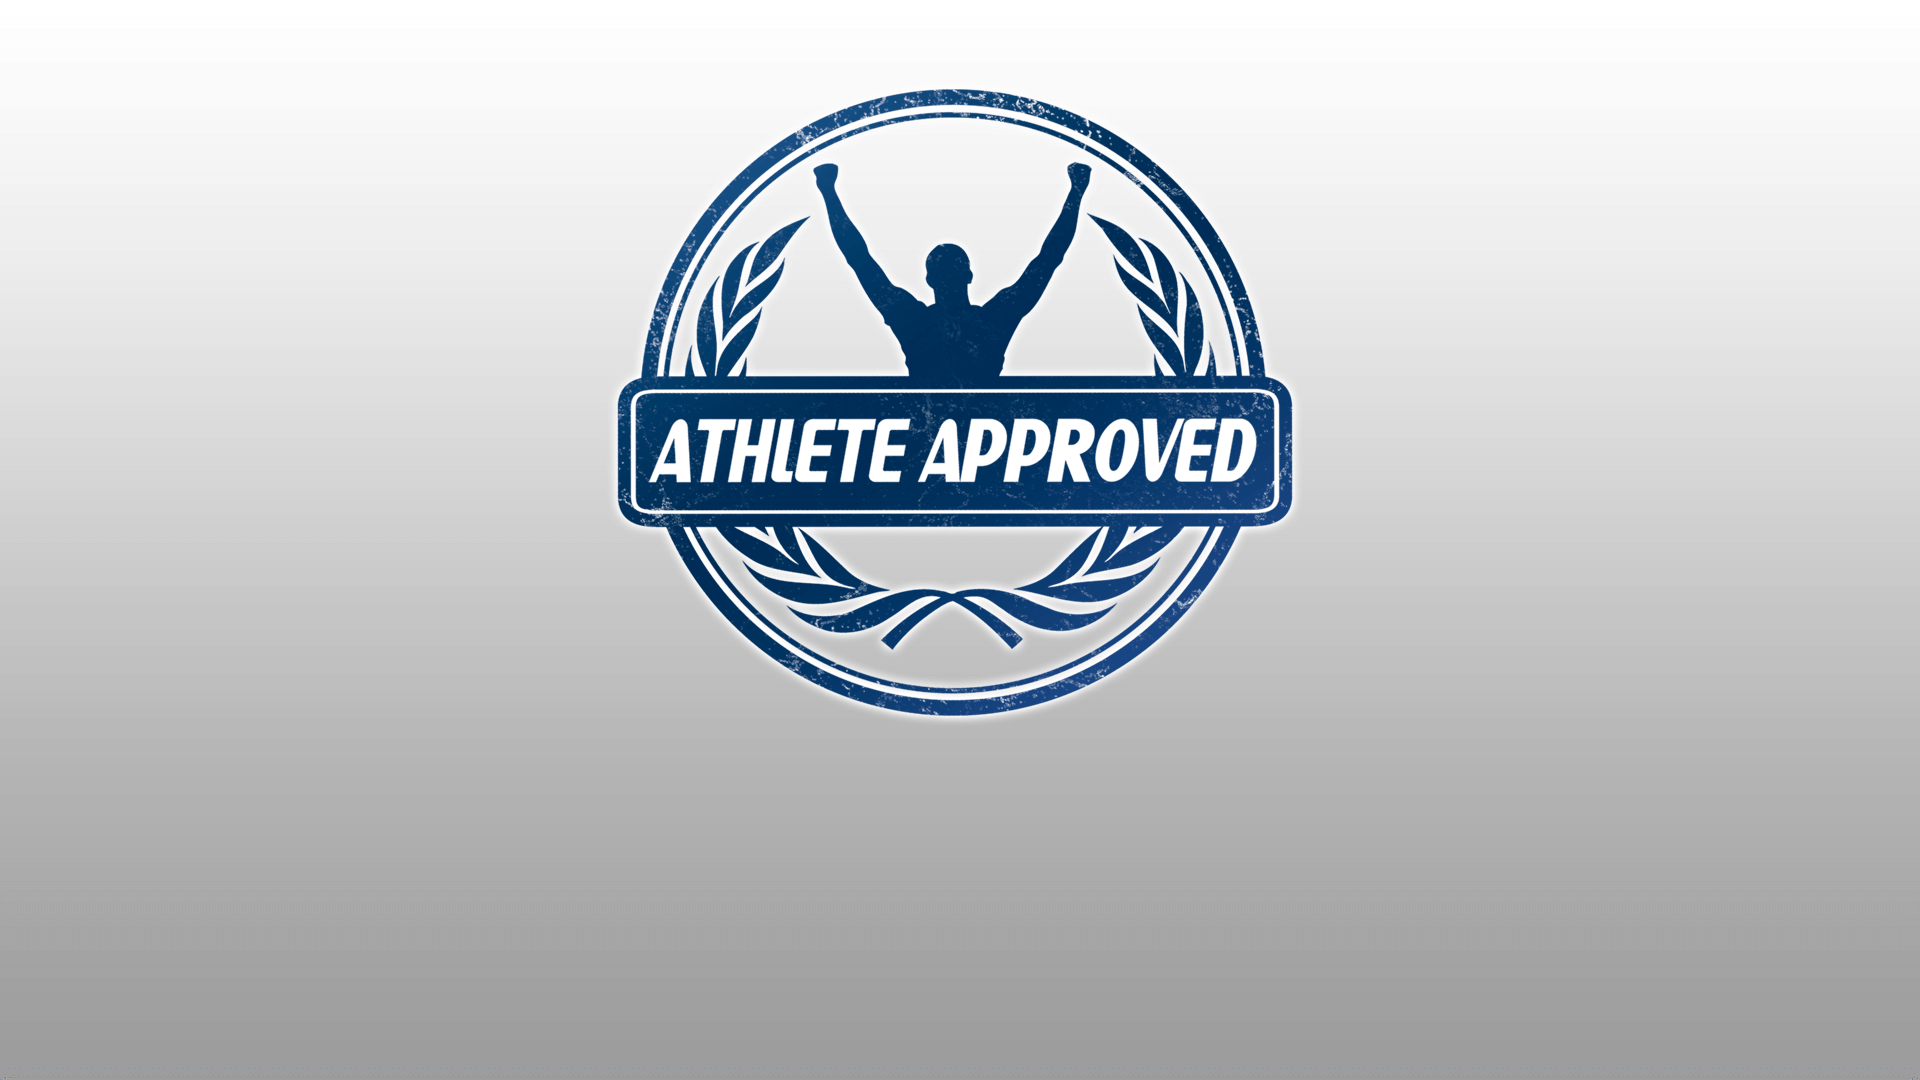 Athlete Approved Stamp